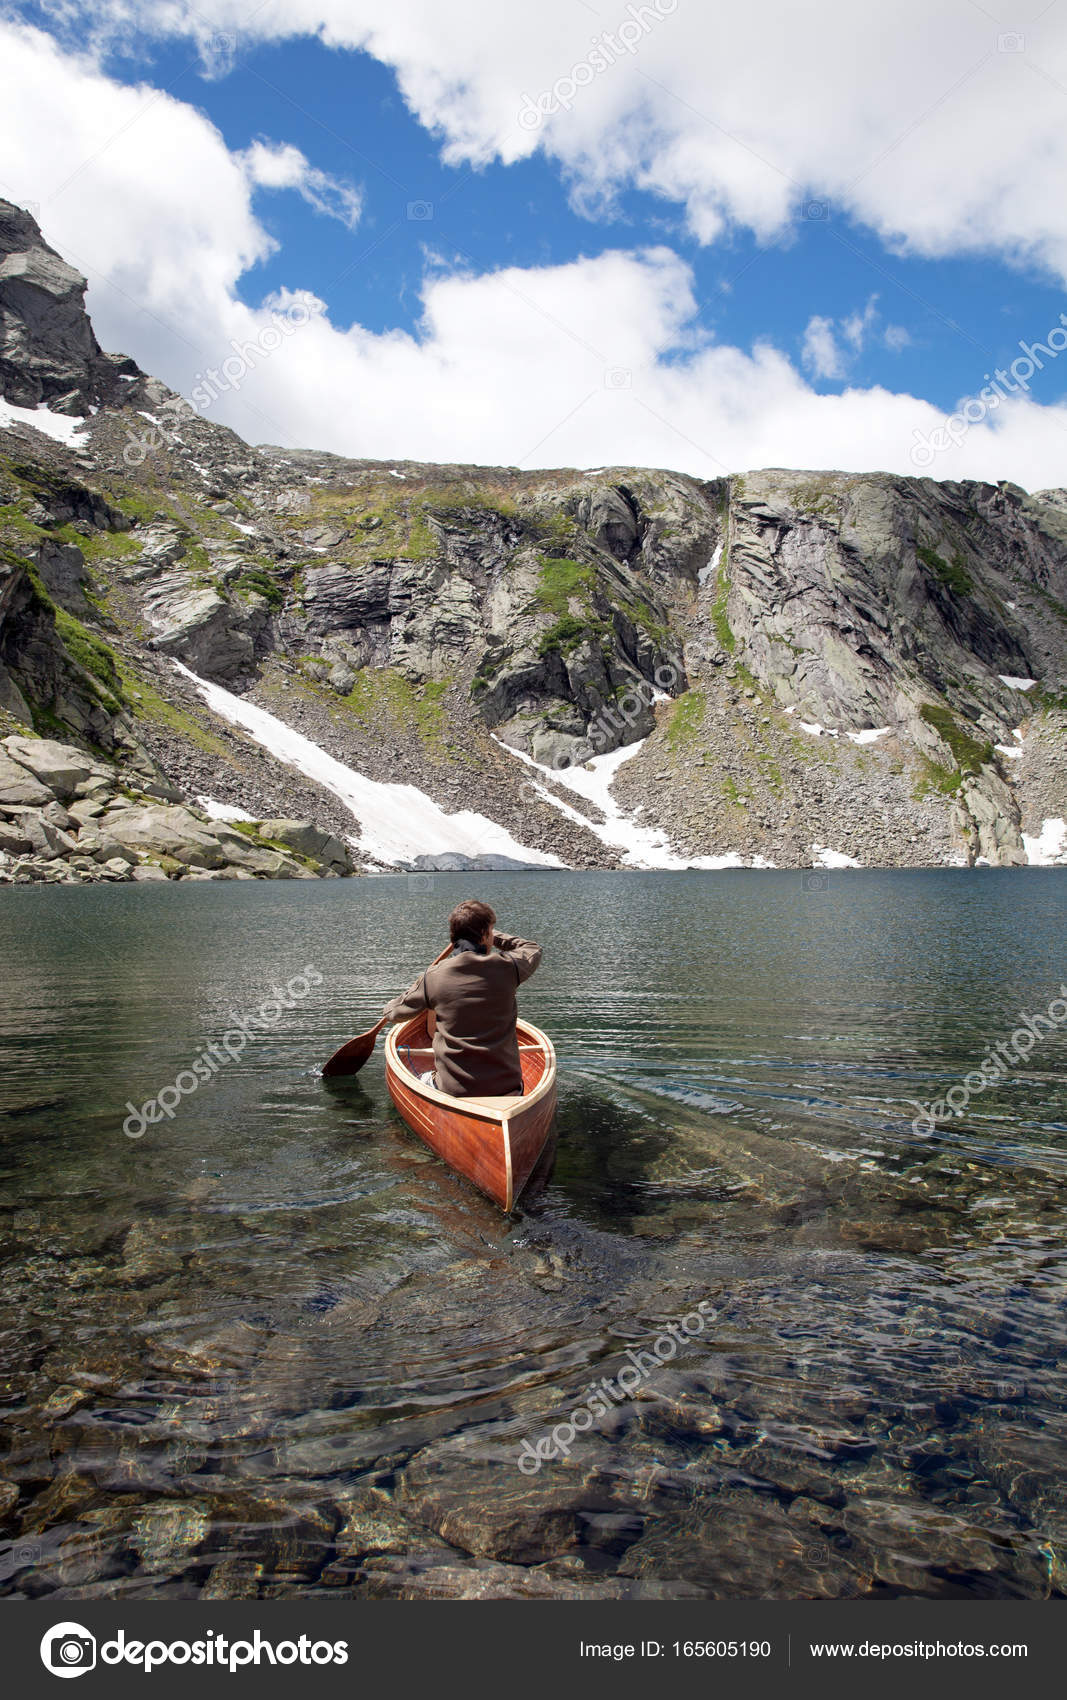 Wooden Canoe In The Middle Of Water Stock Photo